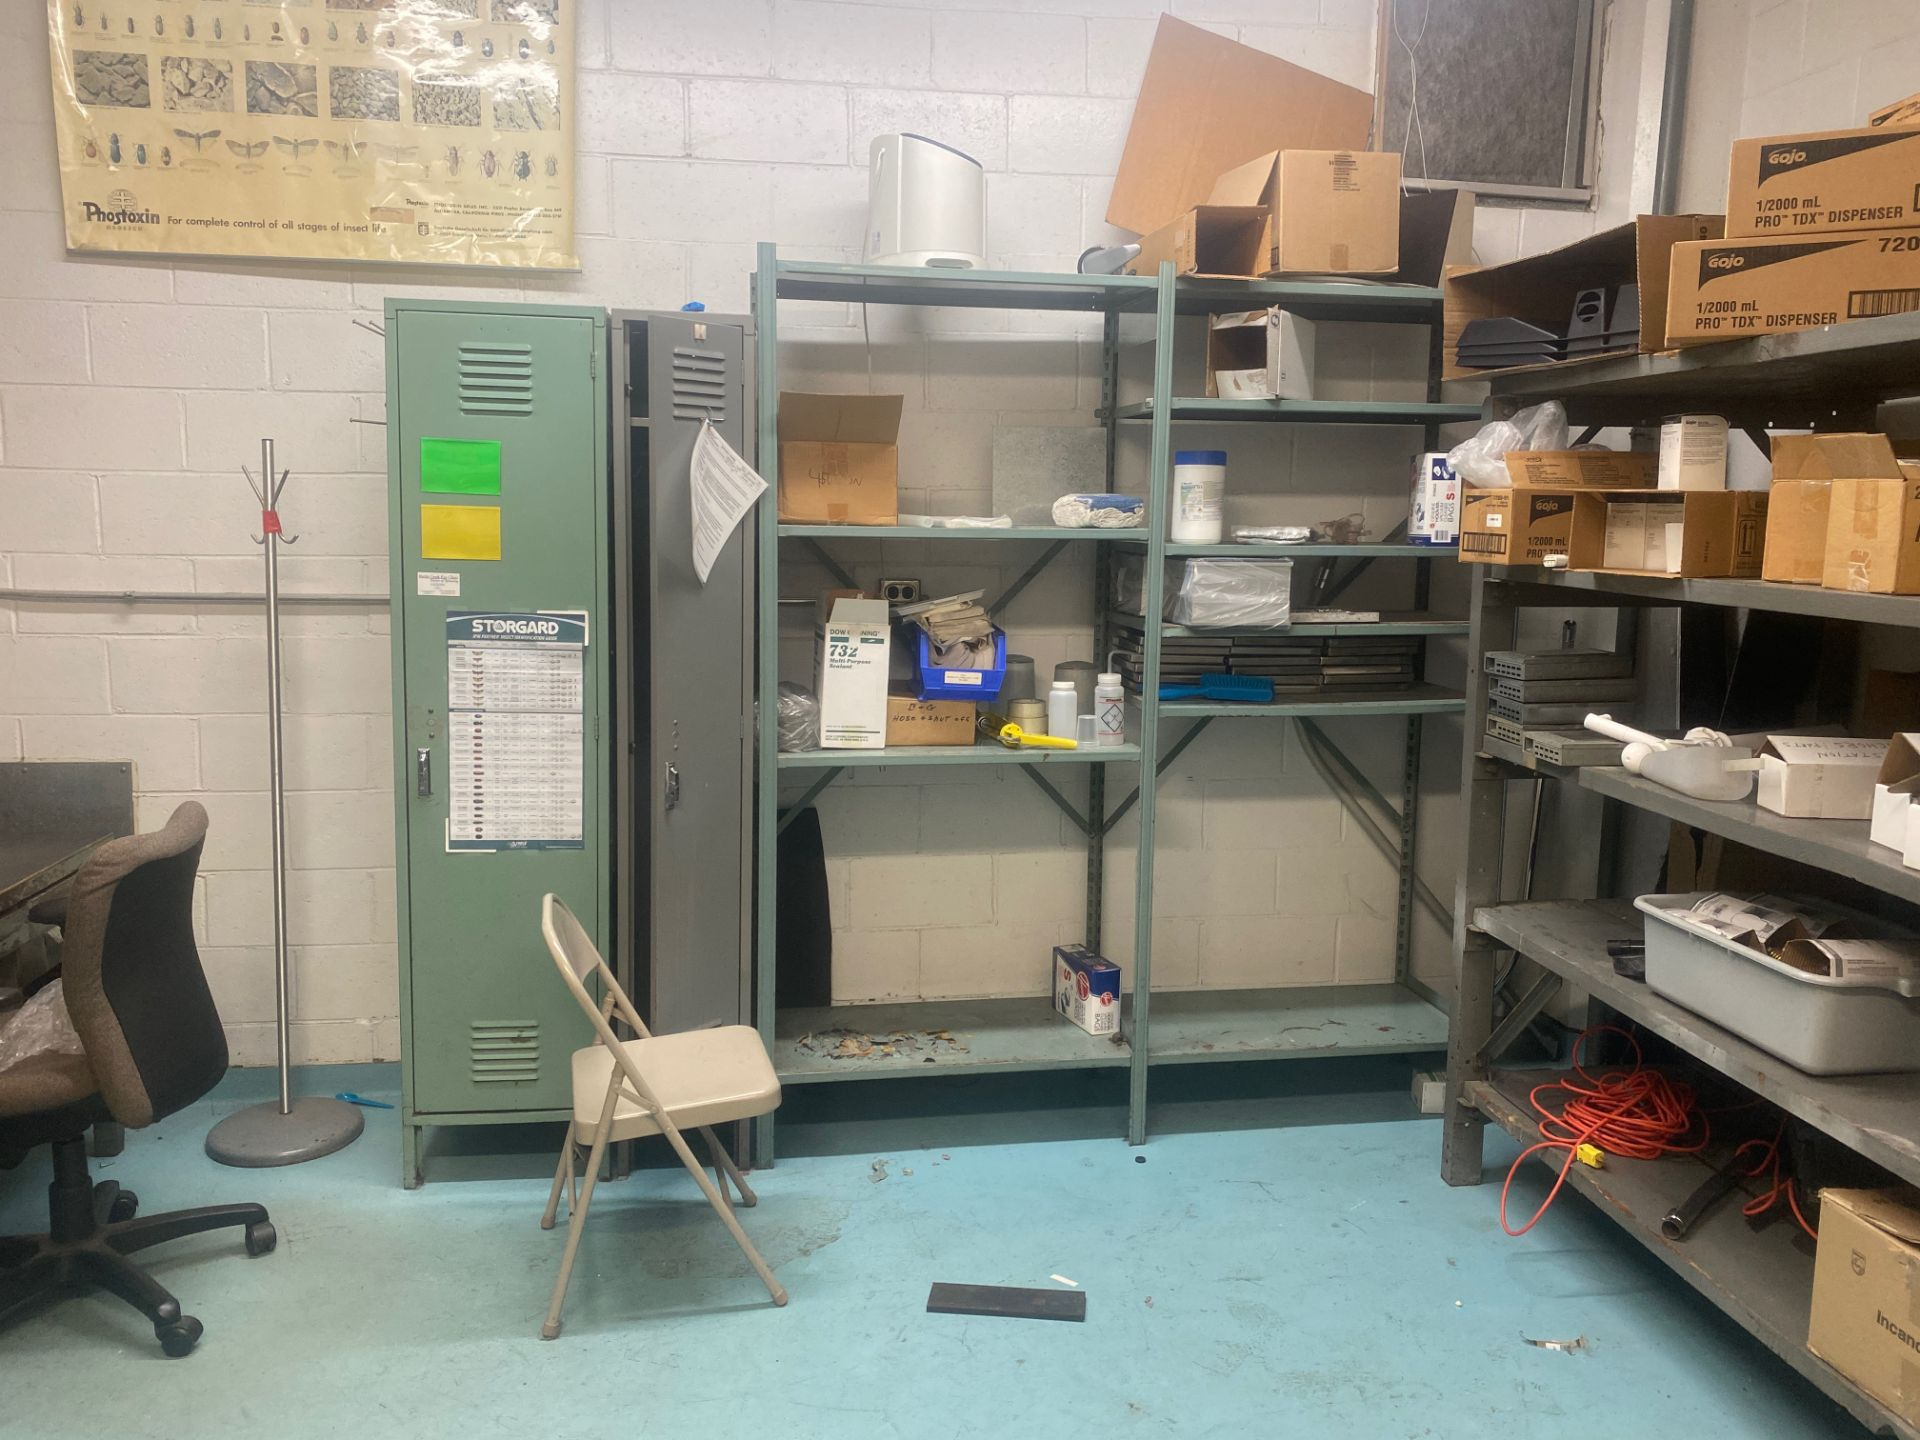 Lot 1490 - Contents of Sanitation Storeroom | Rig Fee: Hand Carry or Contact Rigger